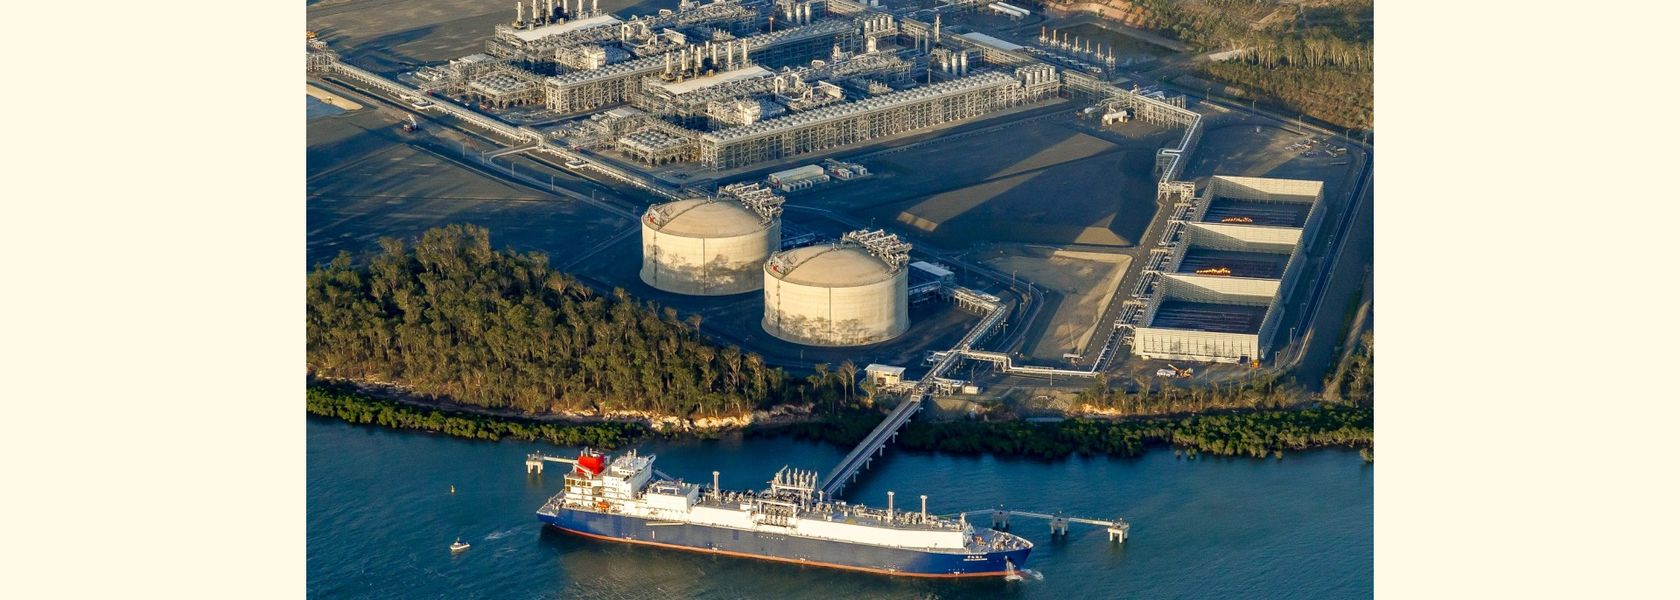 APLNG marks major milestone with 500th LNG cargo